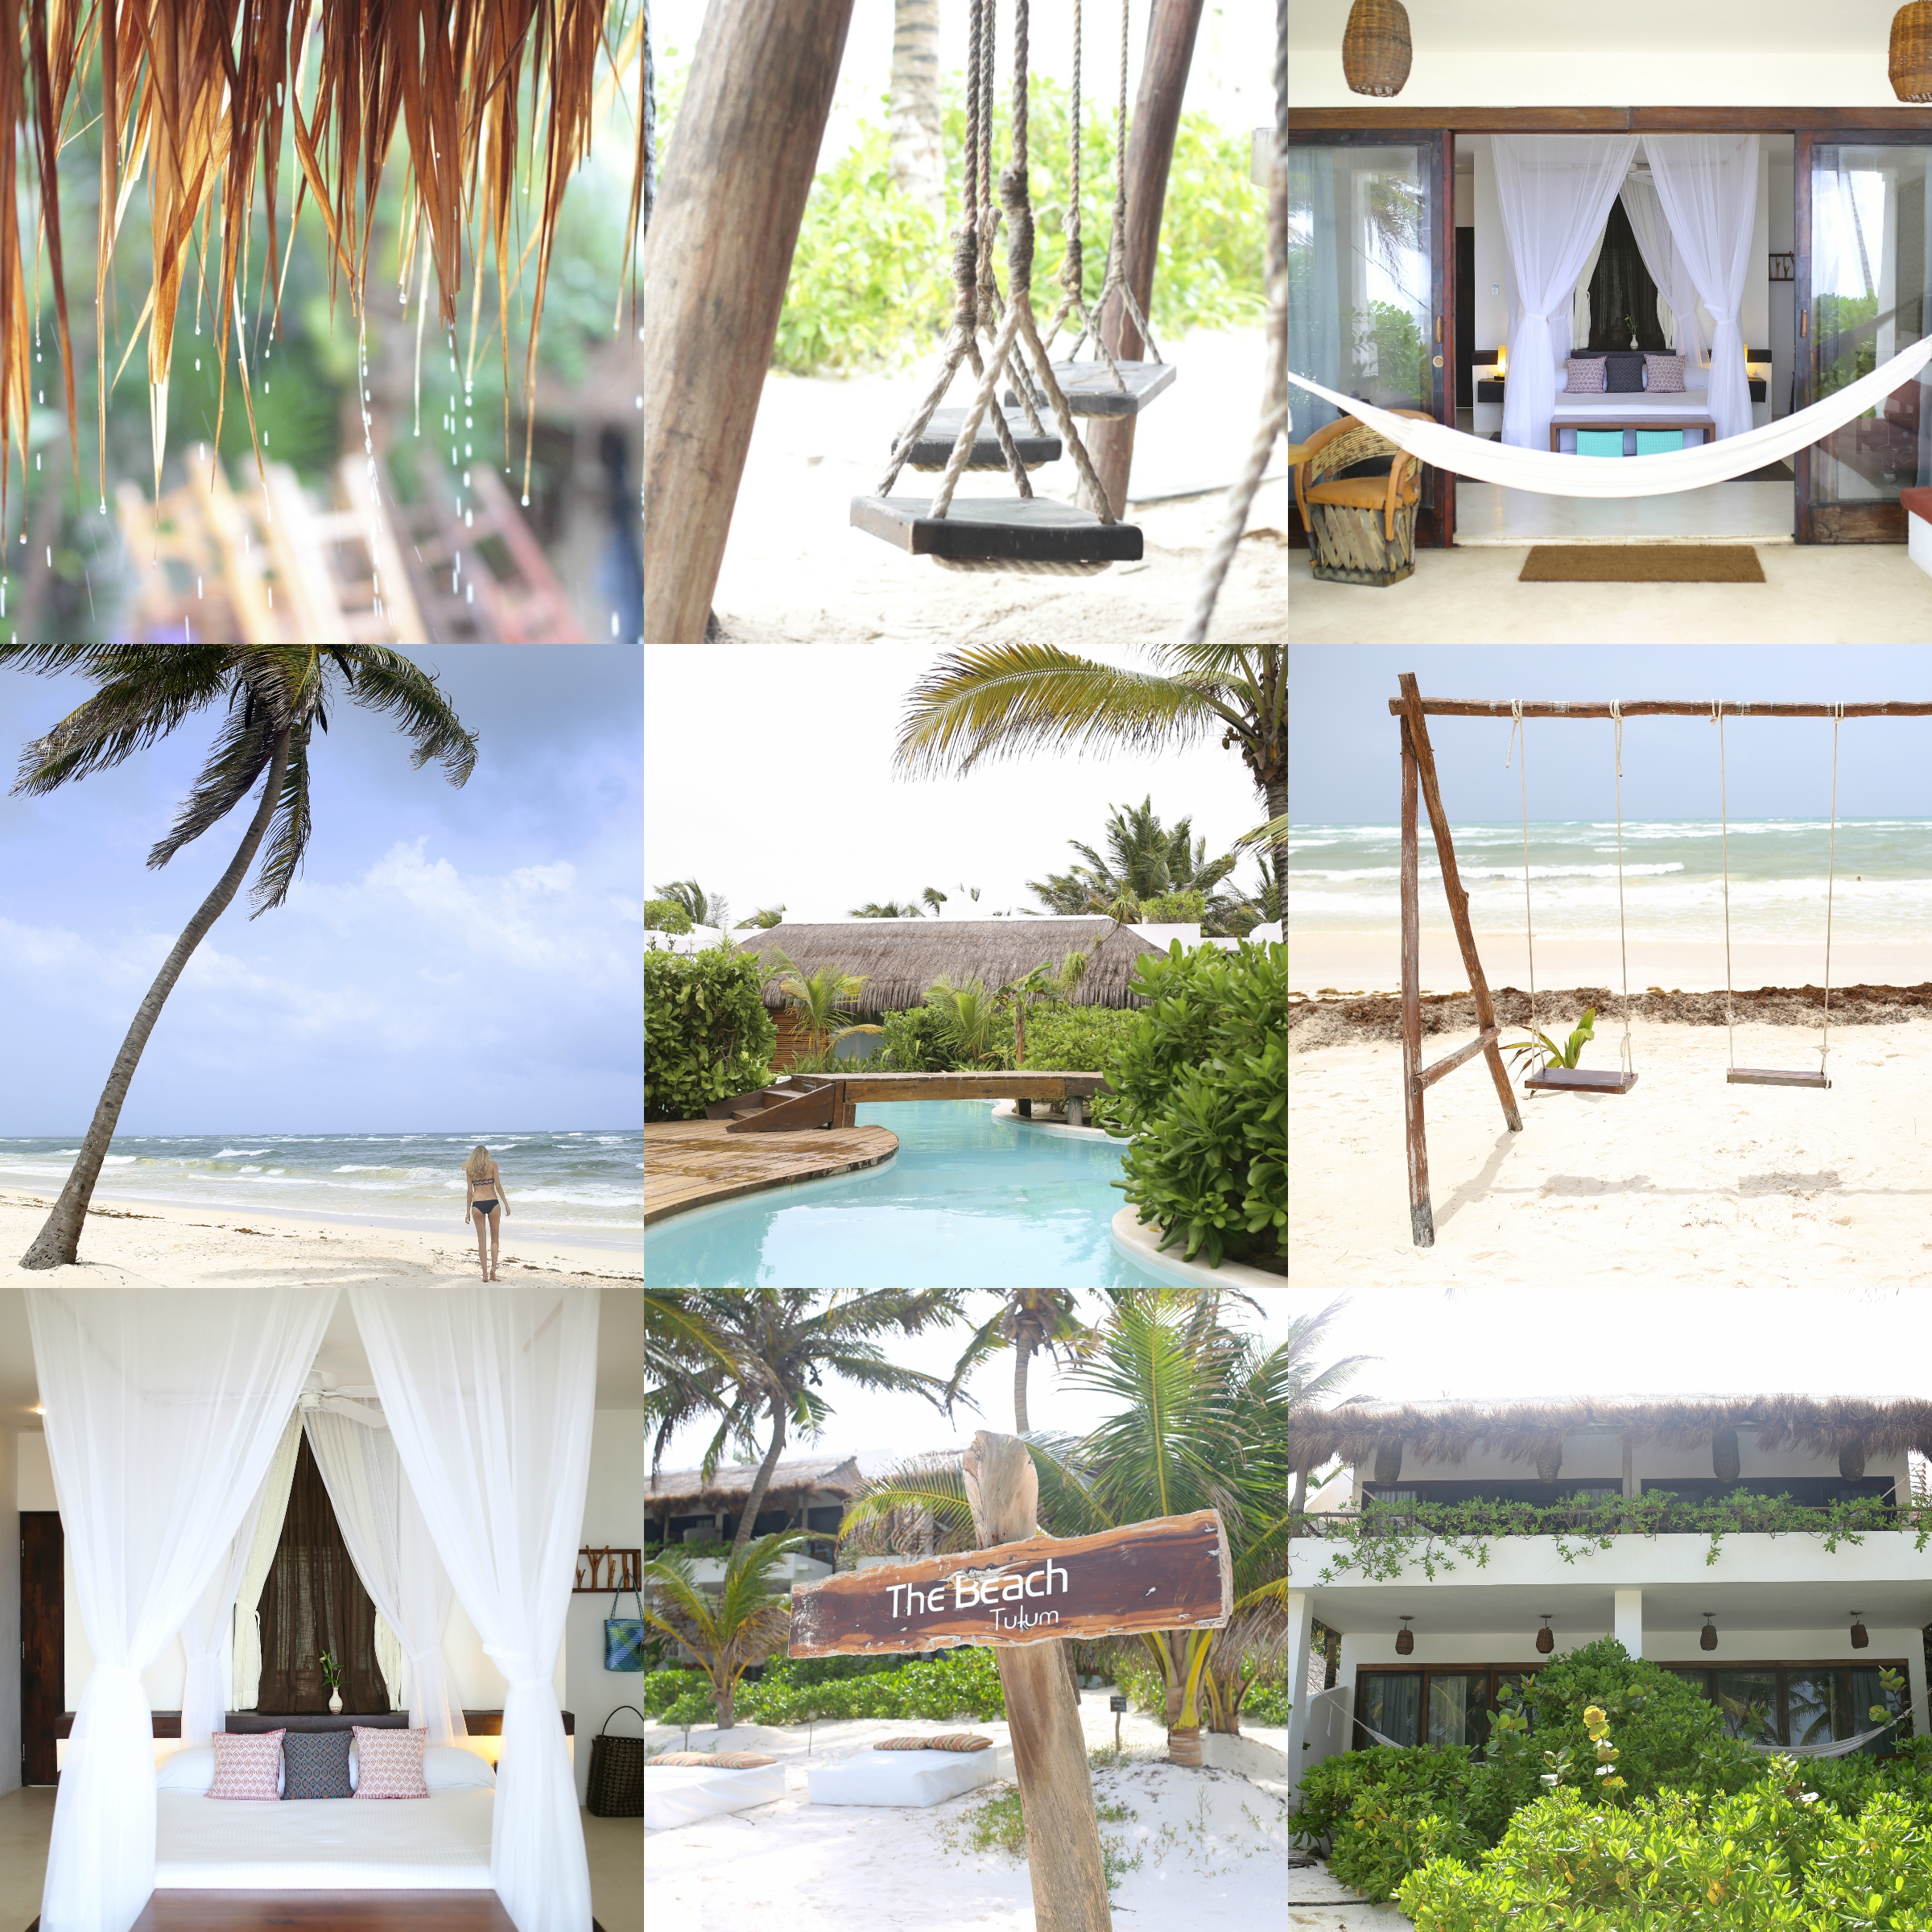 Tulum Travel Guide - Where to stay in Tulum, Mexico.